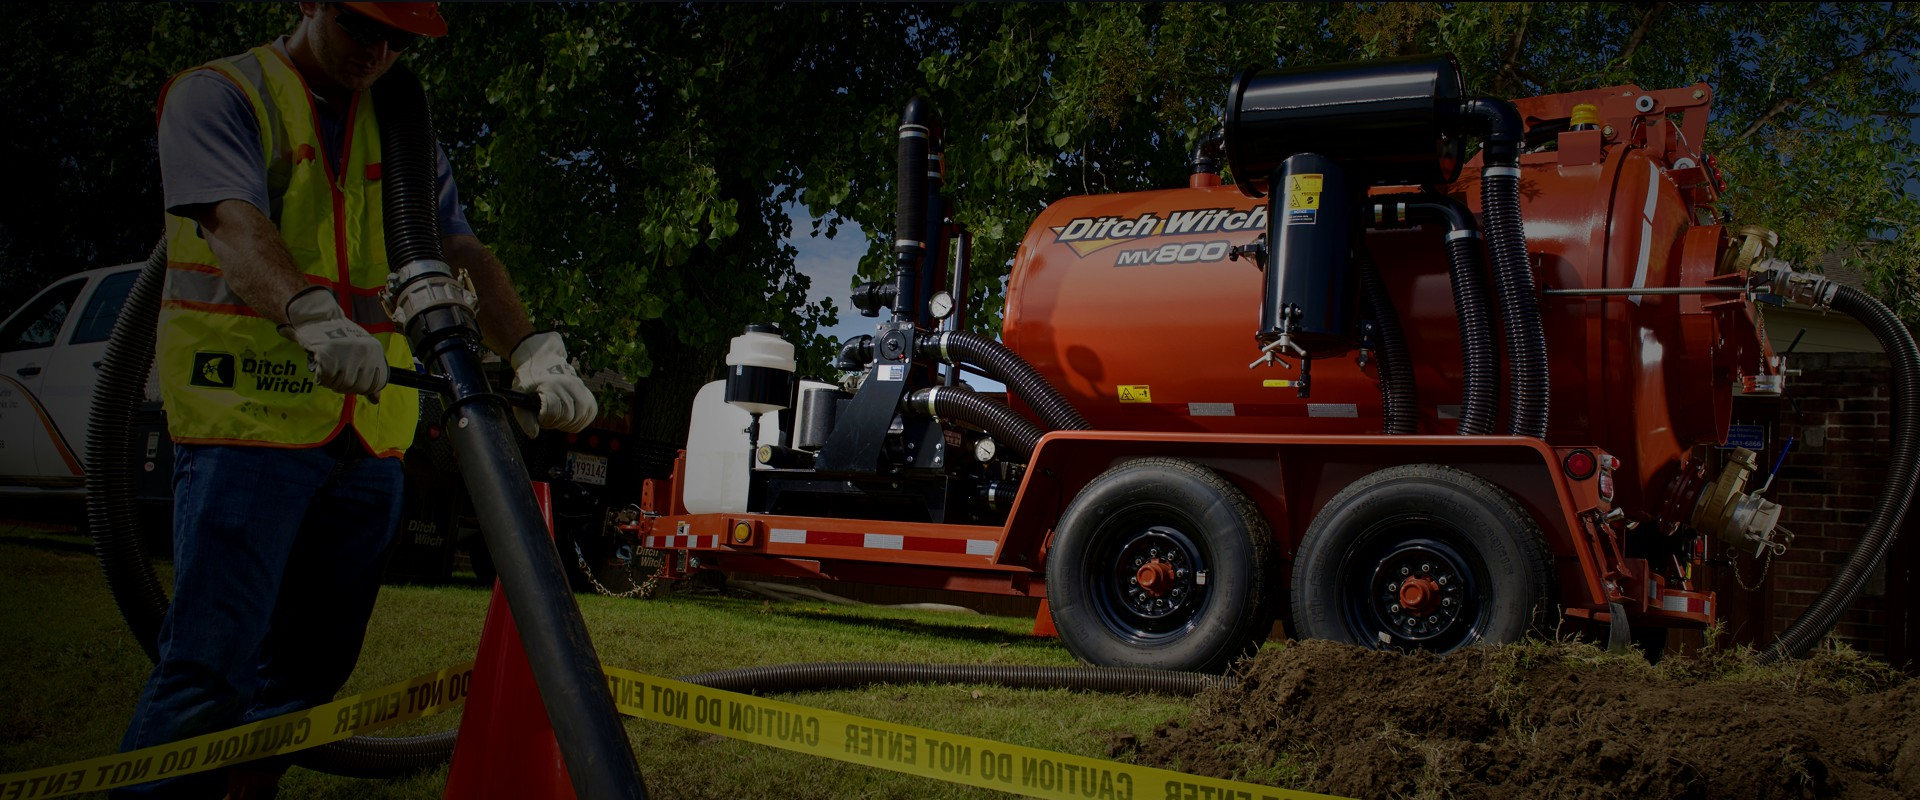 ditch witch banner